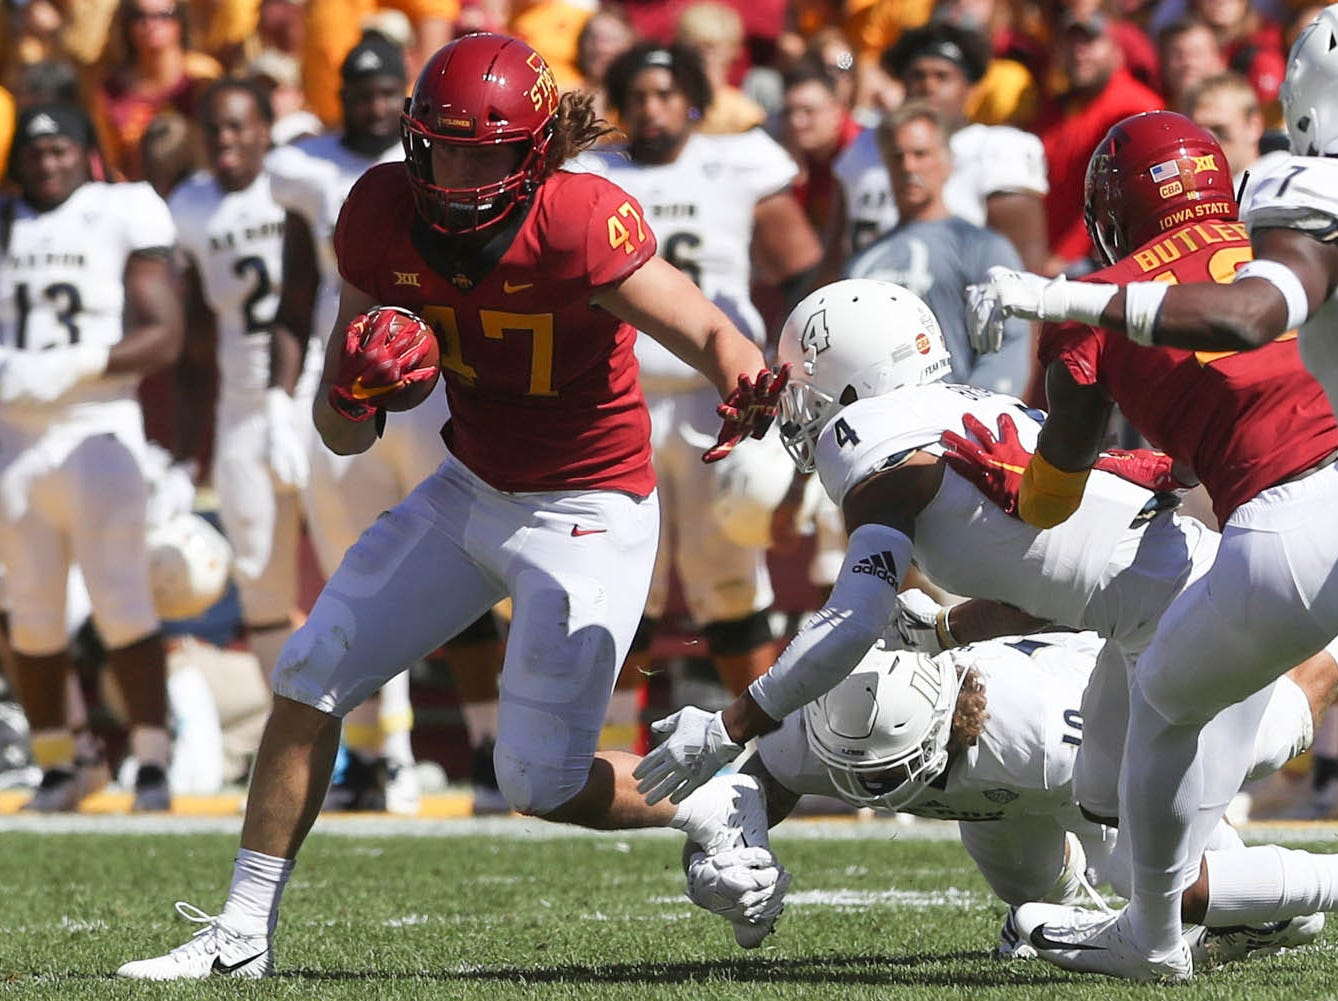 Sep 22, 2018; Ames, IA, USA; Iowa State Cyclones tight end Sam Seonbuchner (47) runs away from Akron Zips cornerback Kyron Brown (4) at Jack Trice Stadium.